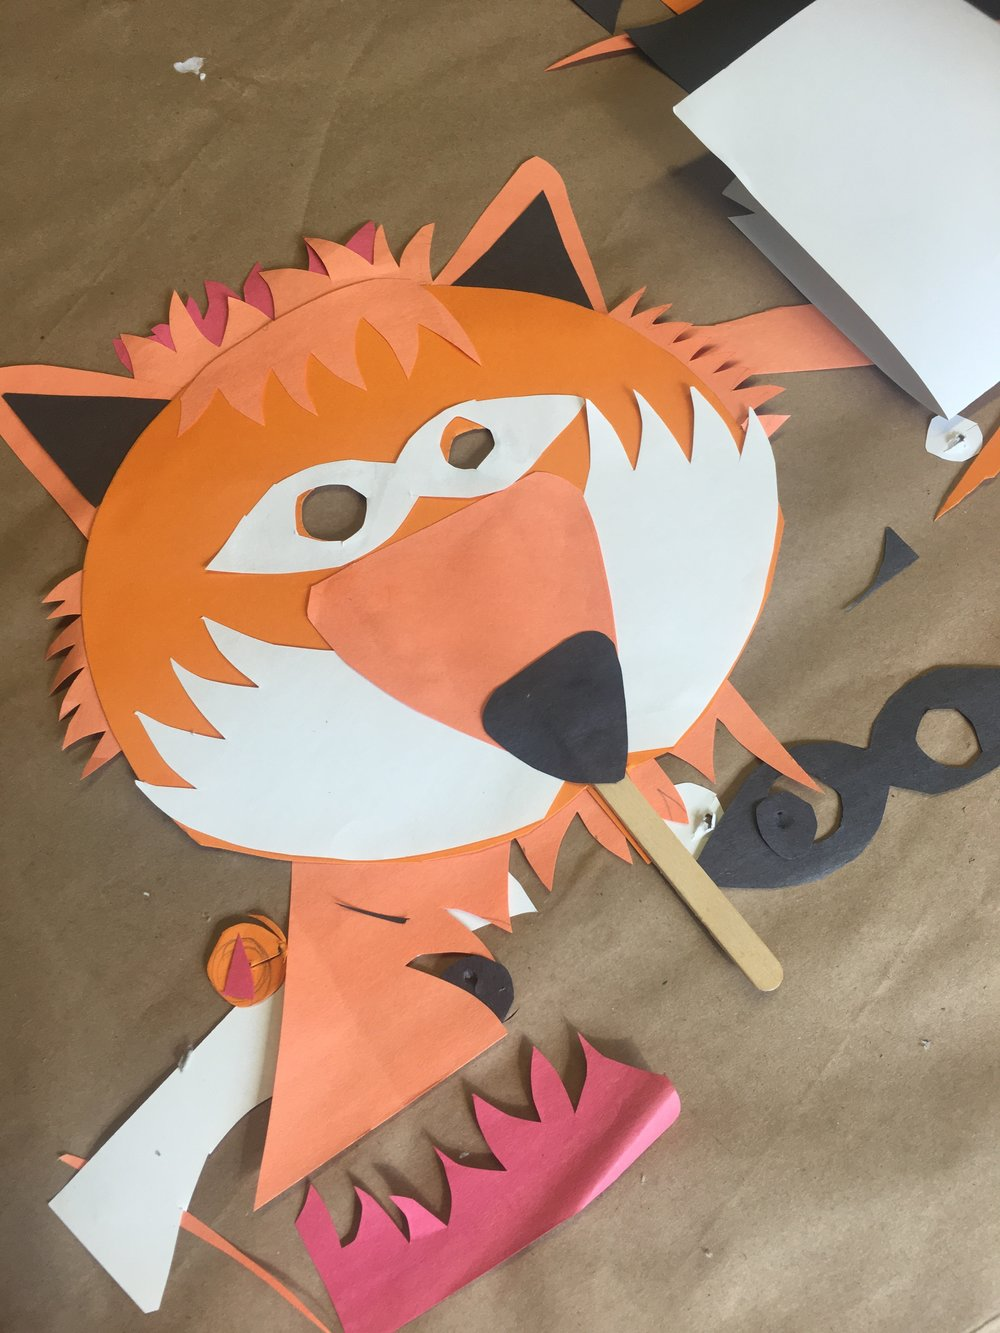 FOX PAPER CRAFTING PAPER CUT MASK.JPG